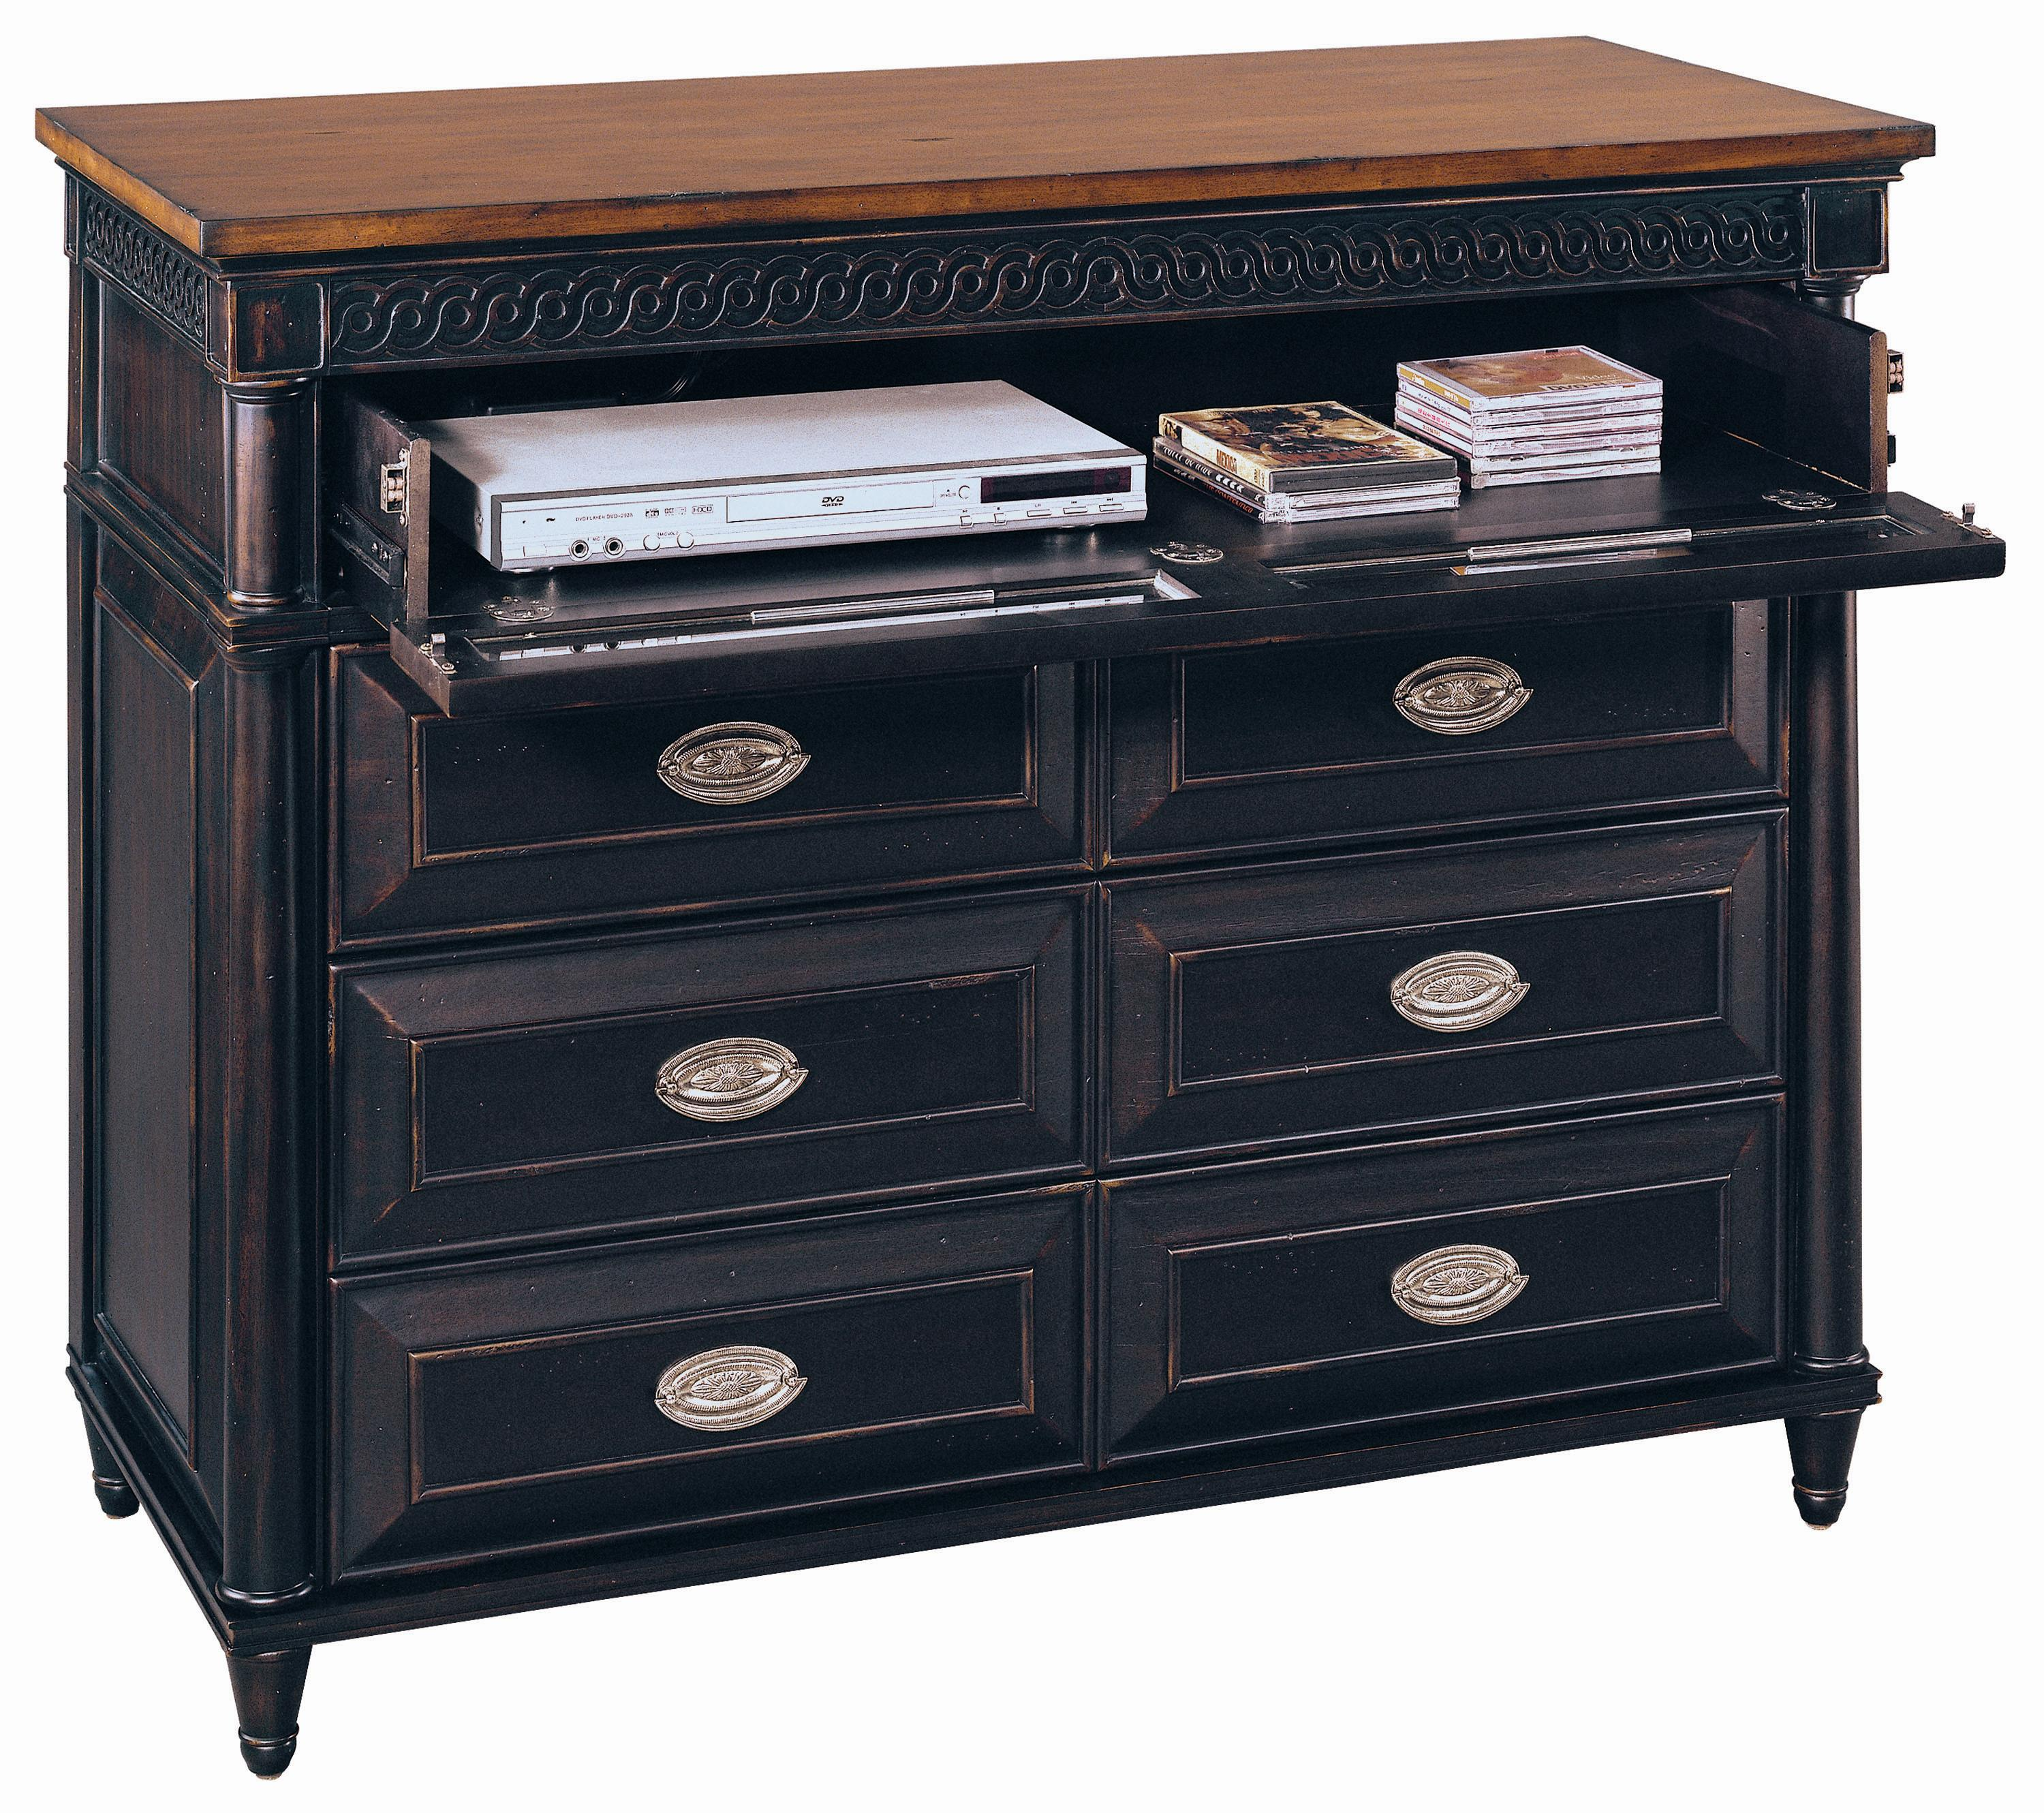 Aspenhome Young Classics Entertainment Chest - Item Number: I88-485-1